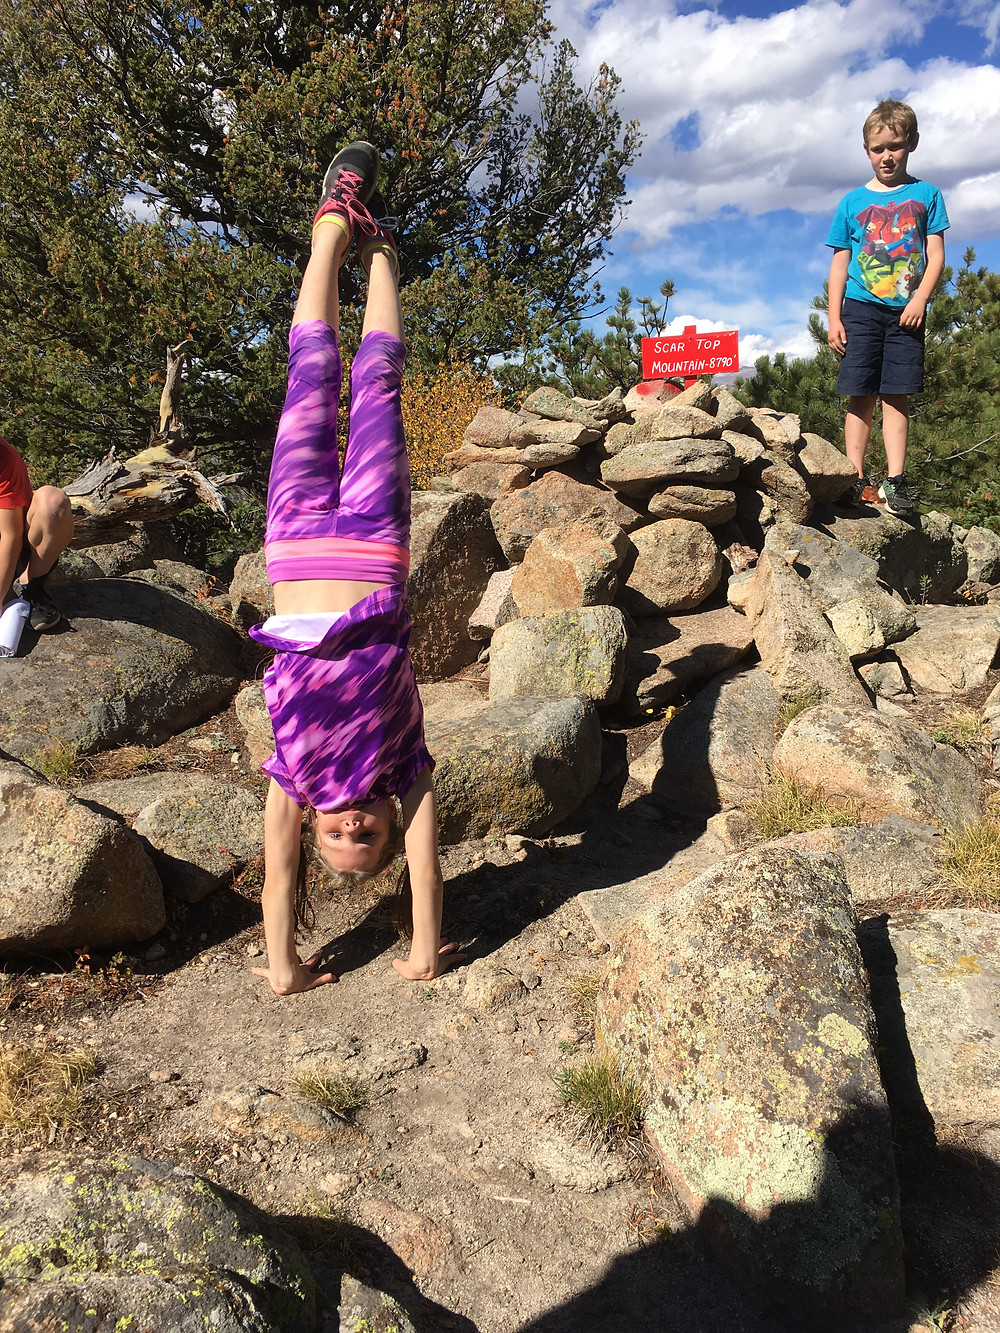 Mountaintop Handstand